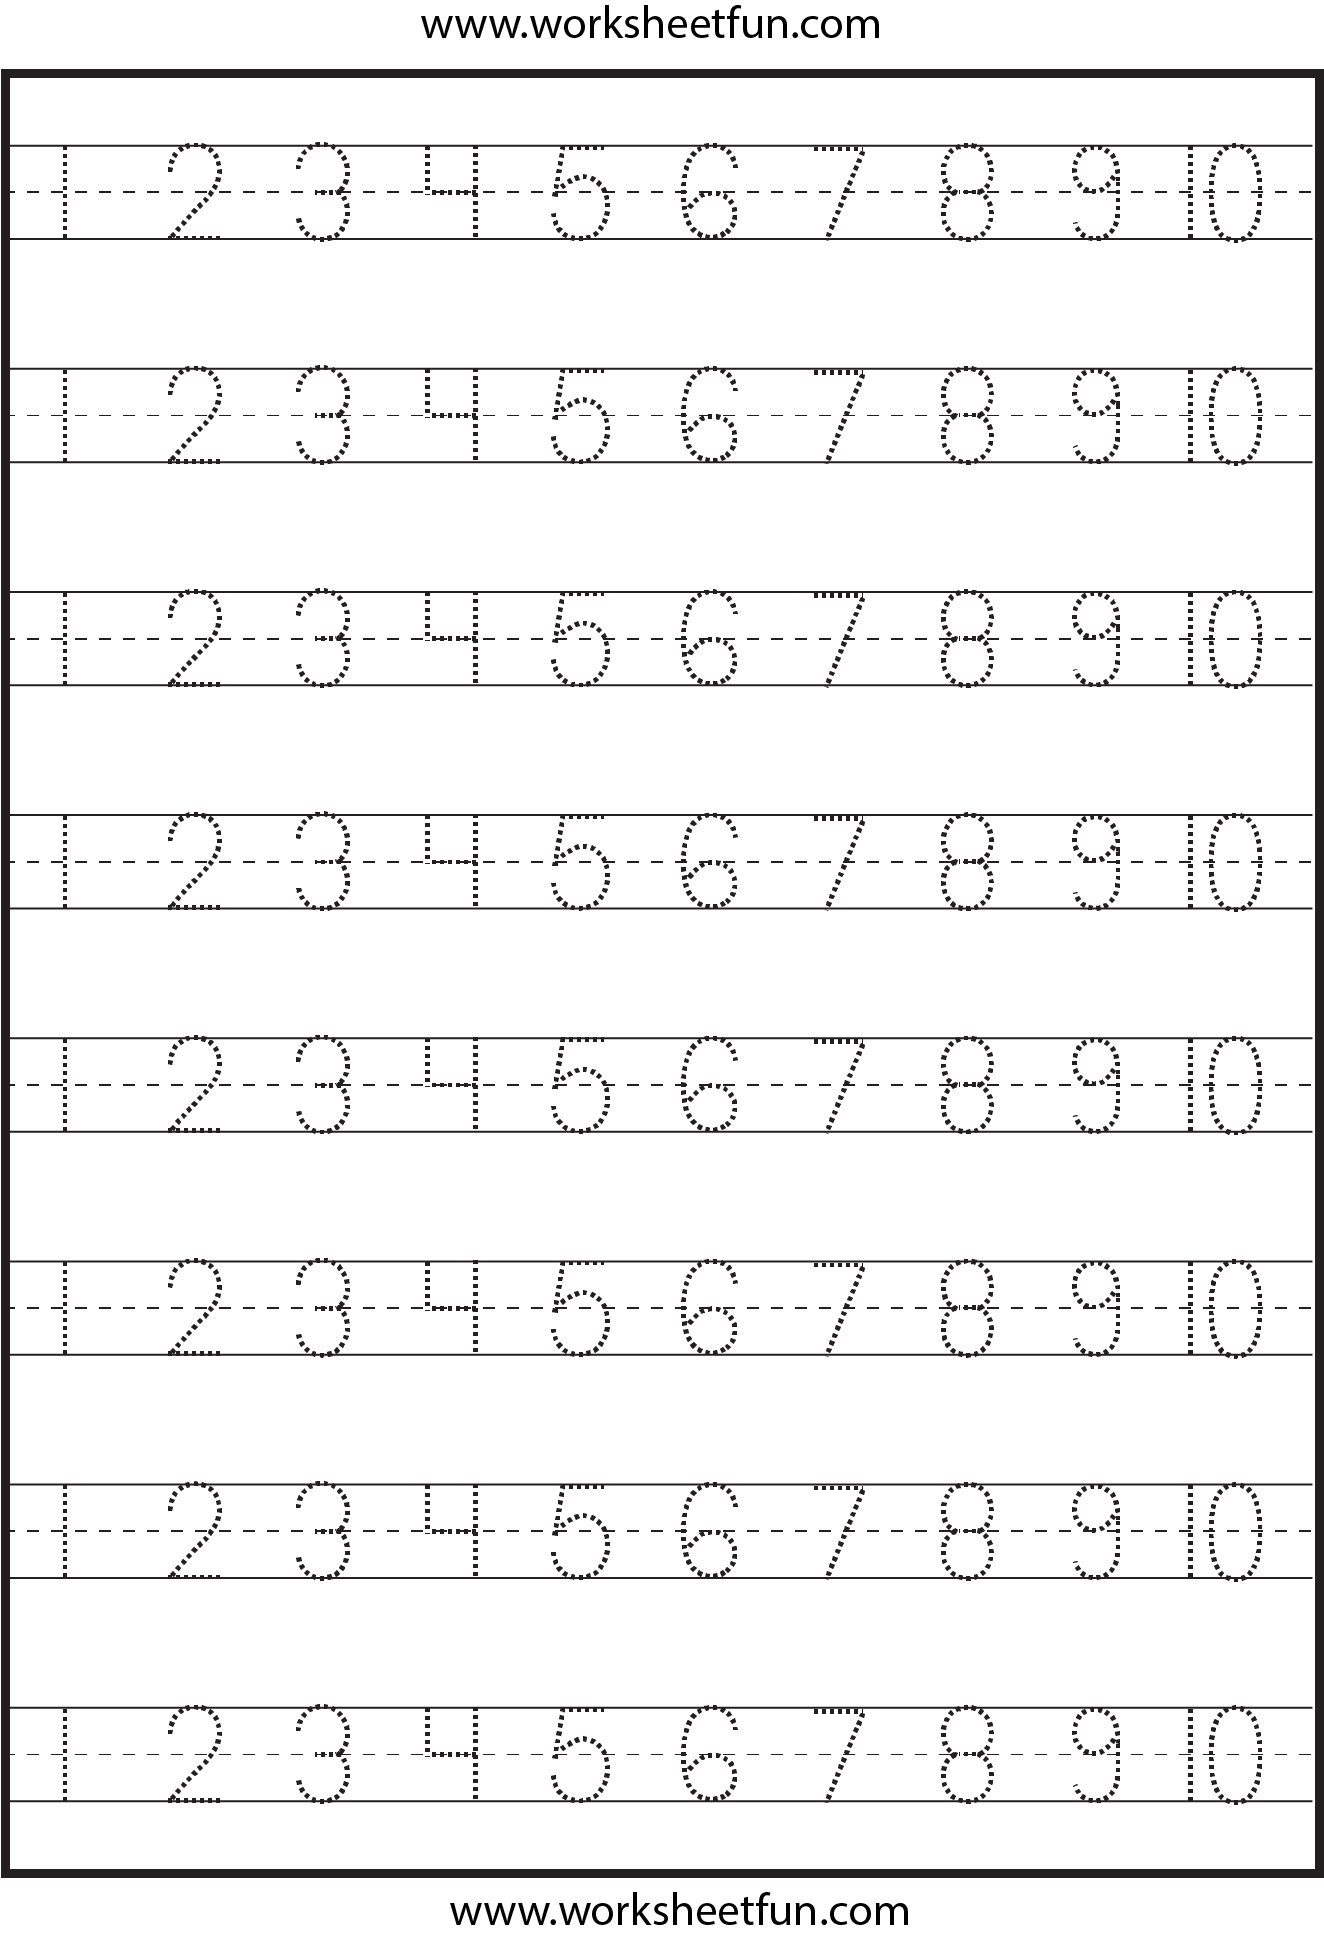 graphic regarding Free Printable Numbers 1 10 called Selection Tracing 1-10 Worksheet / Cost-free Printable